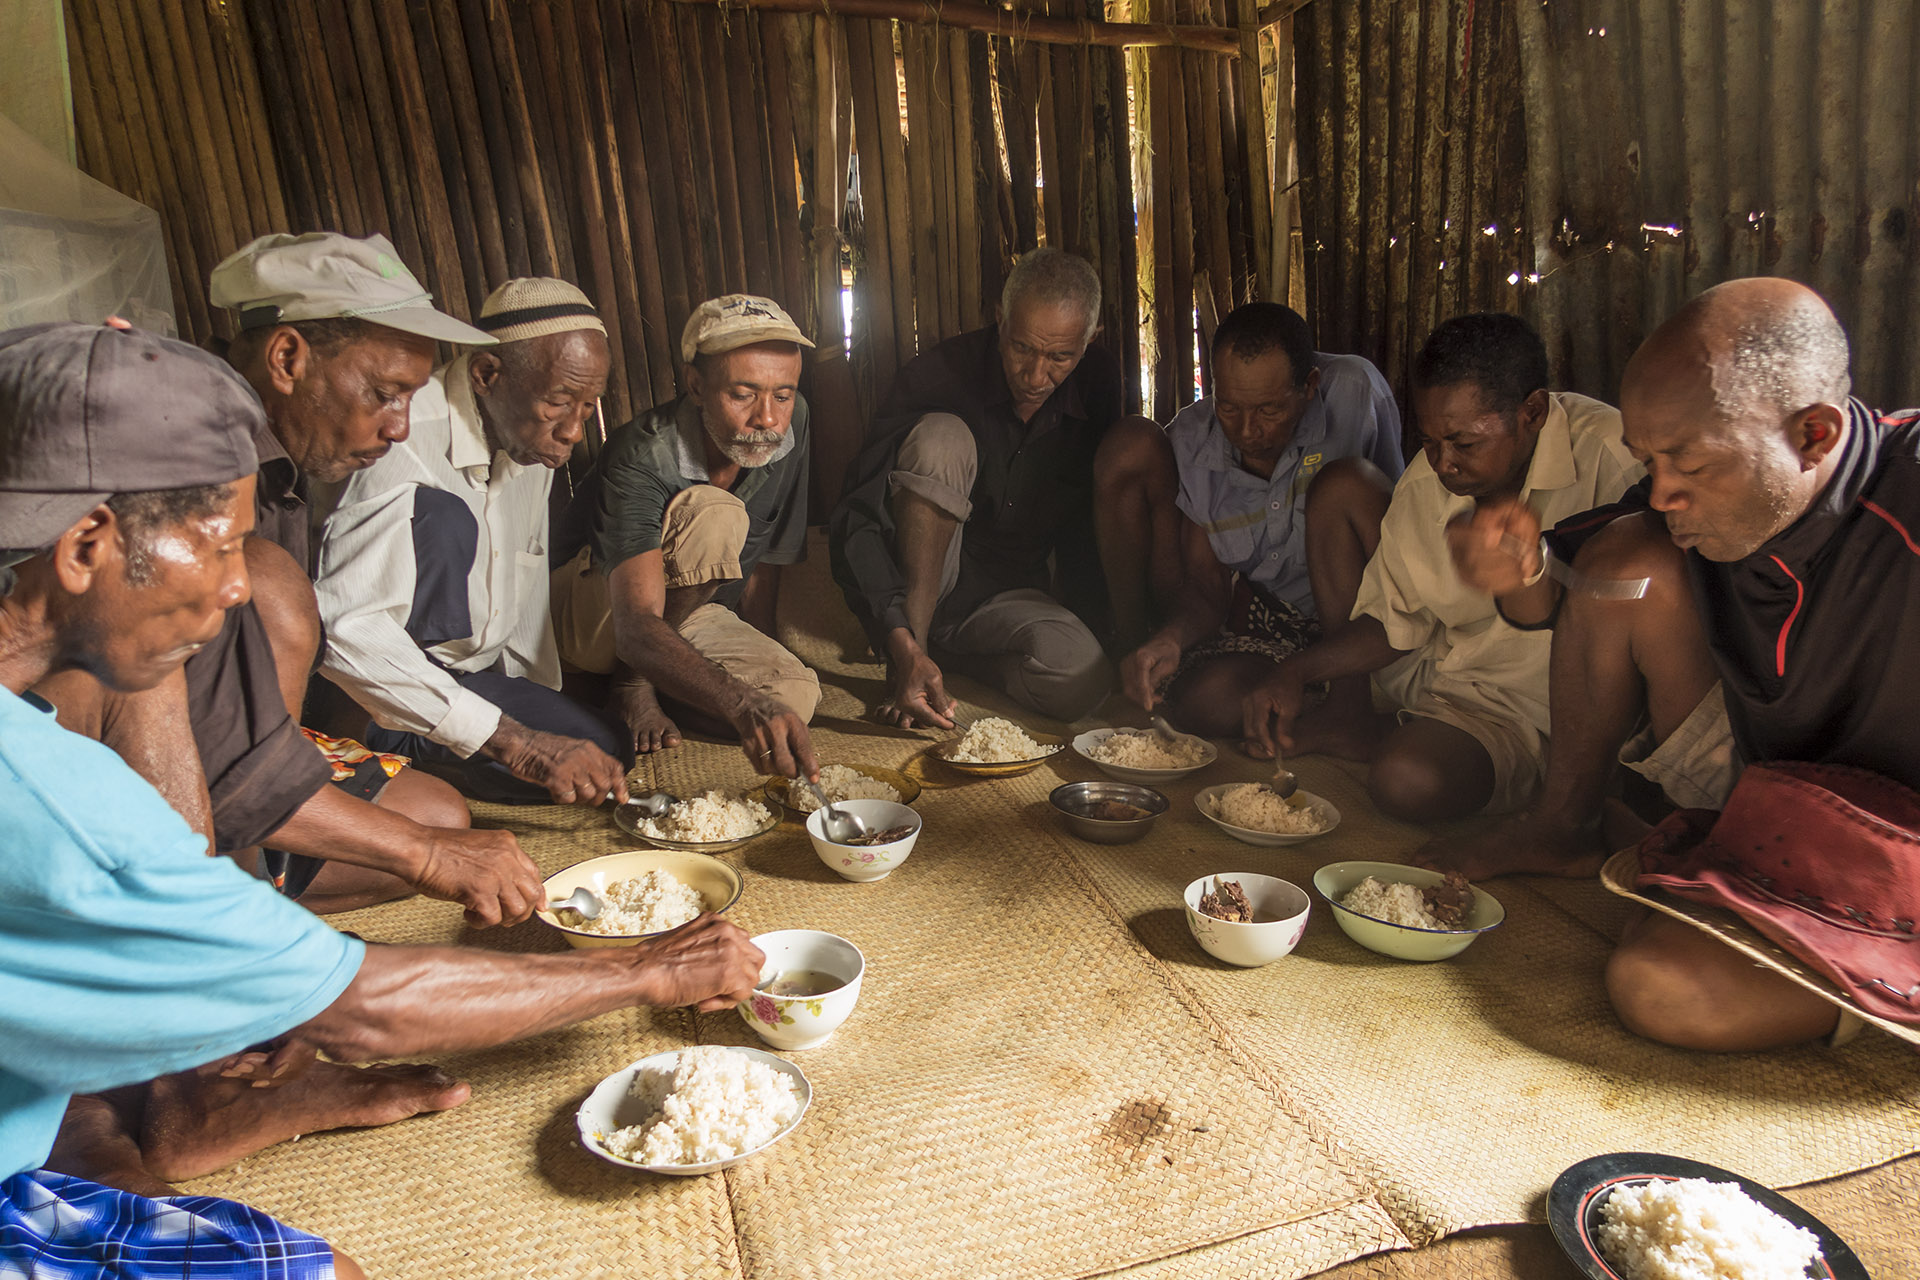 All of the headmen eating together at the recent funeral.